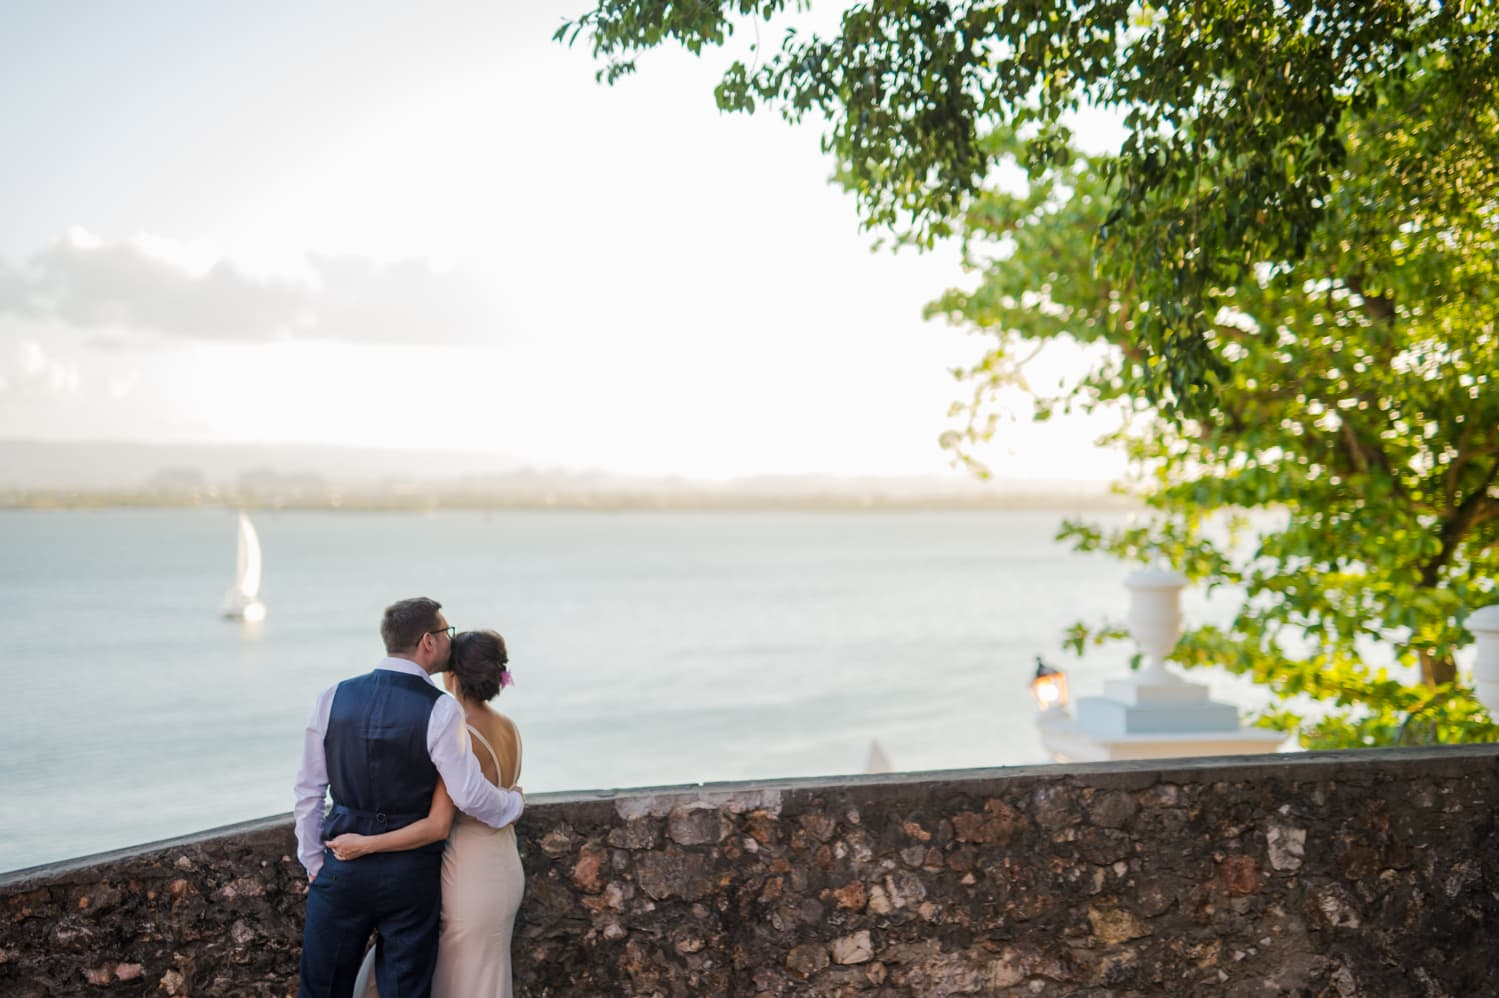 Old San Juan elopement photography by Puerto Rico wedding photographer Camille Fontanez